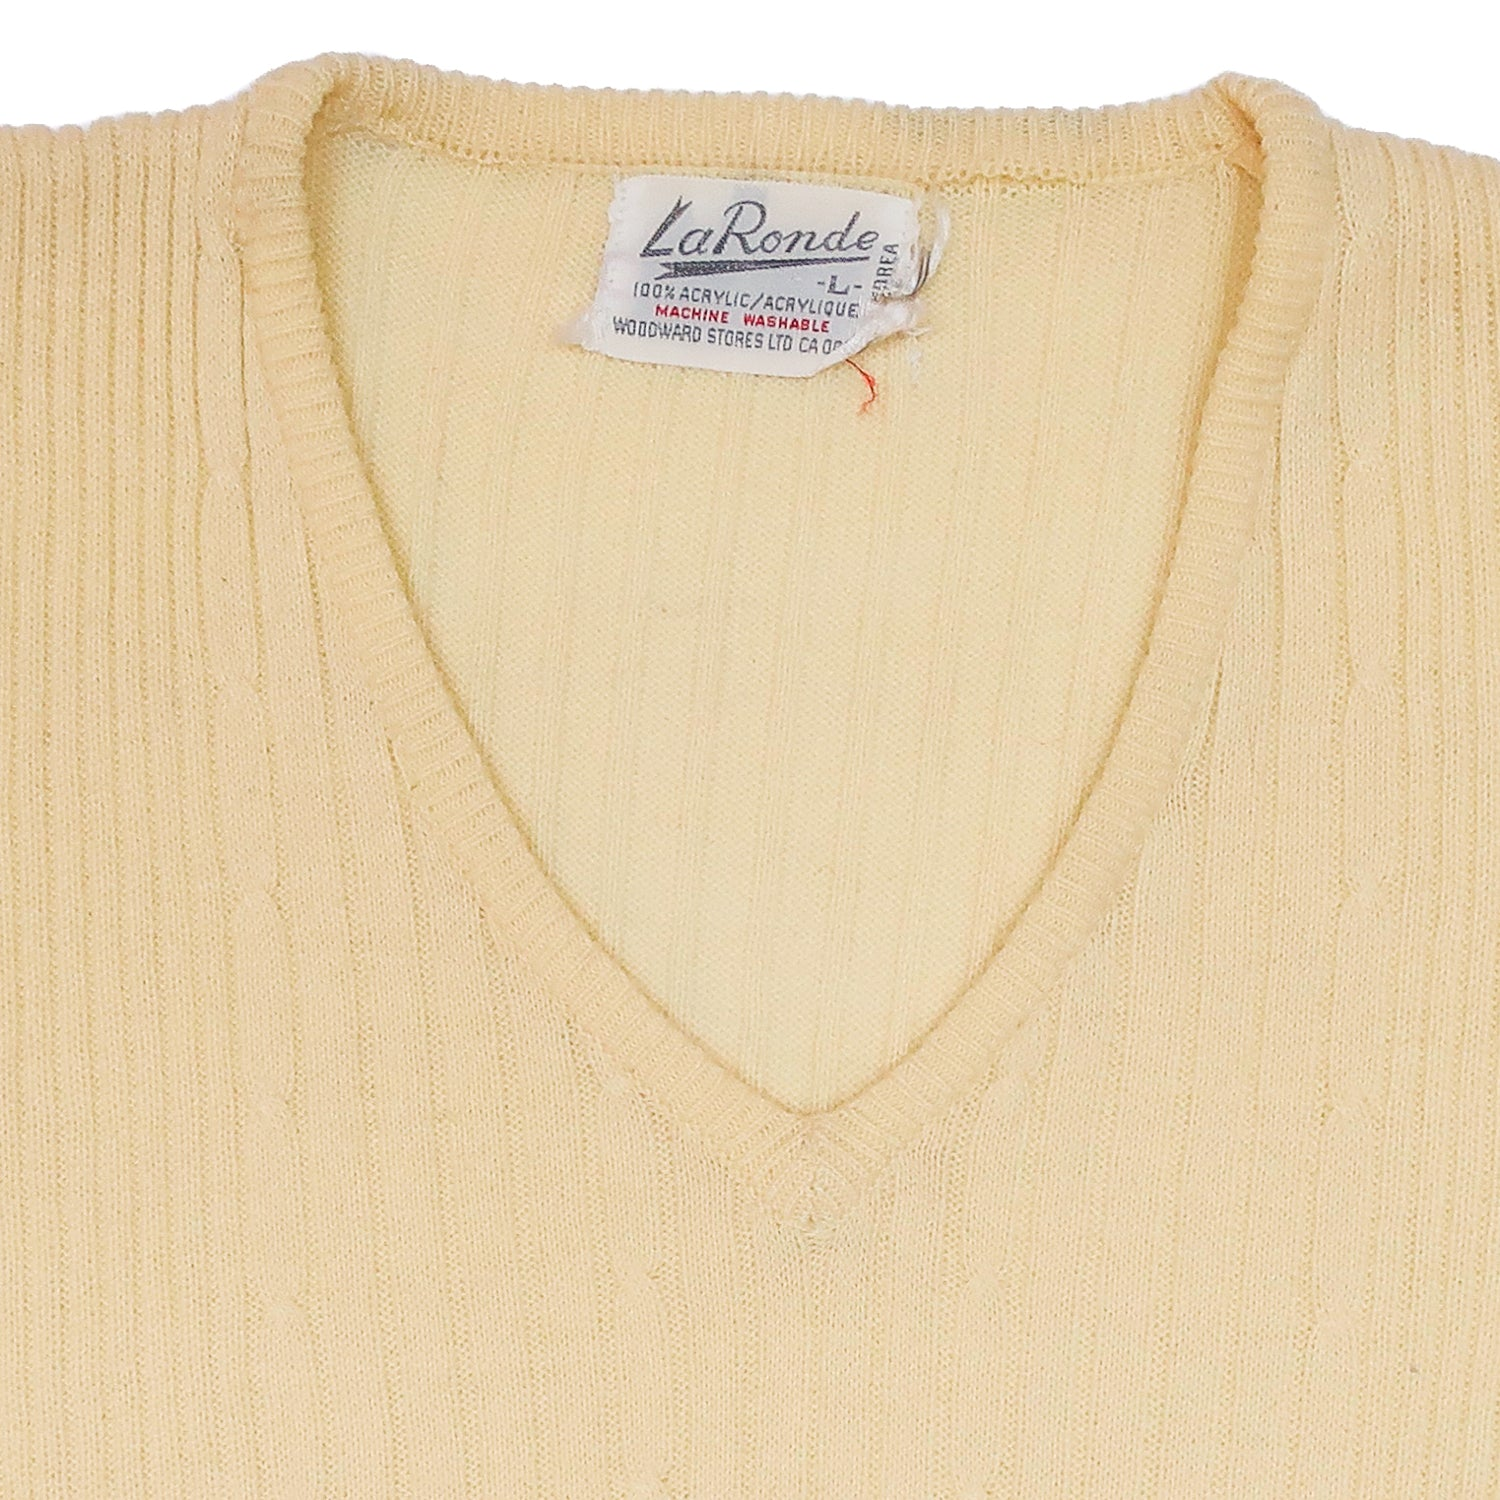 Second Room Vintage Clothing. Vintage light pastel baby yellow ribbed sweater vest/tank top. Sleeveless with v-neck. Free Shipping on all orders within North America.